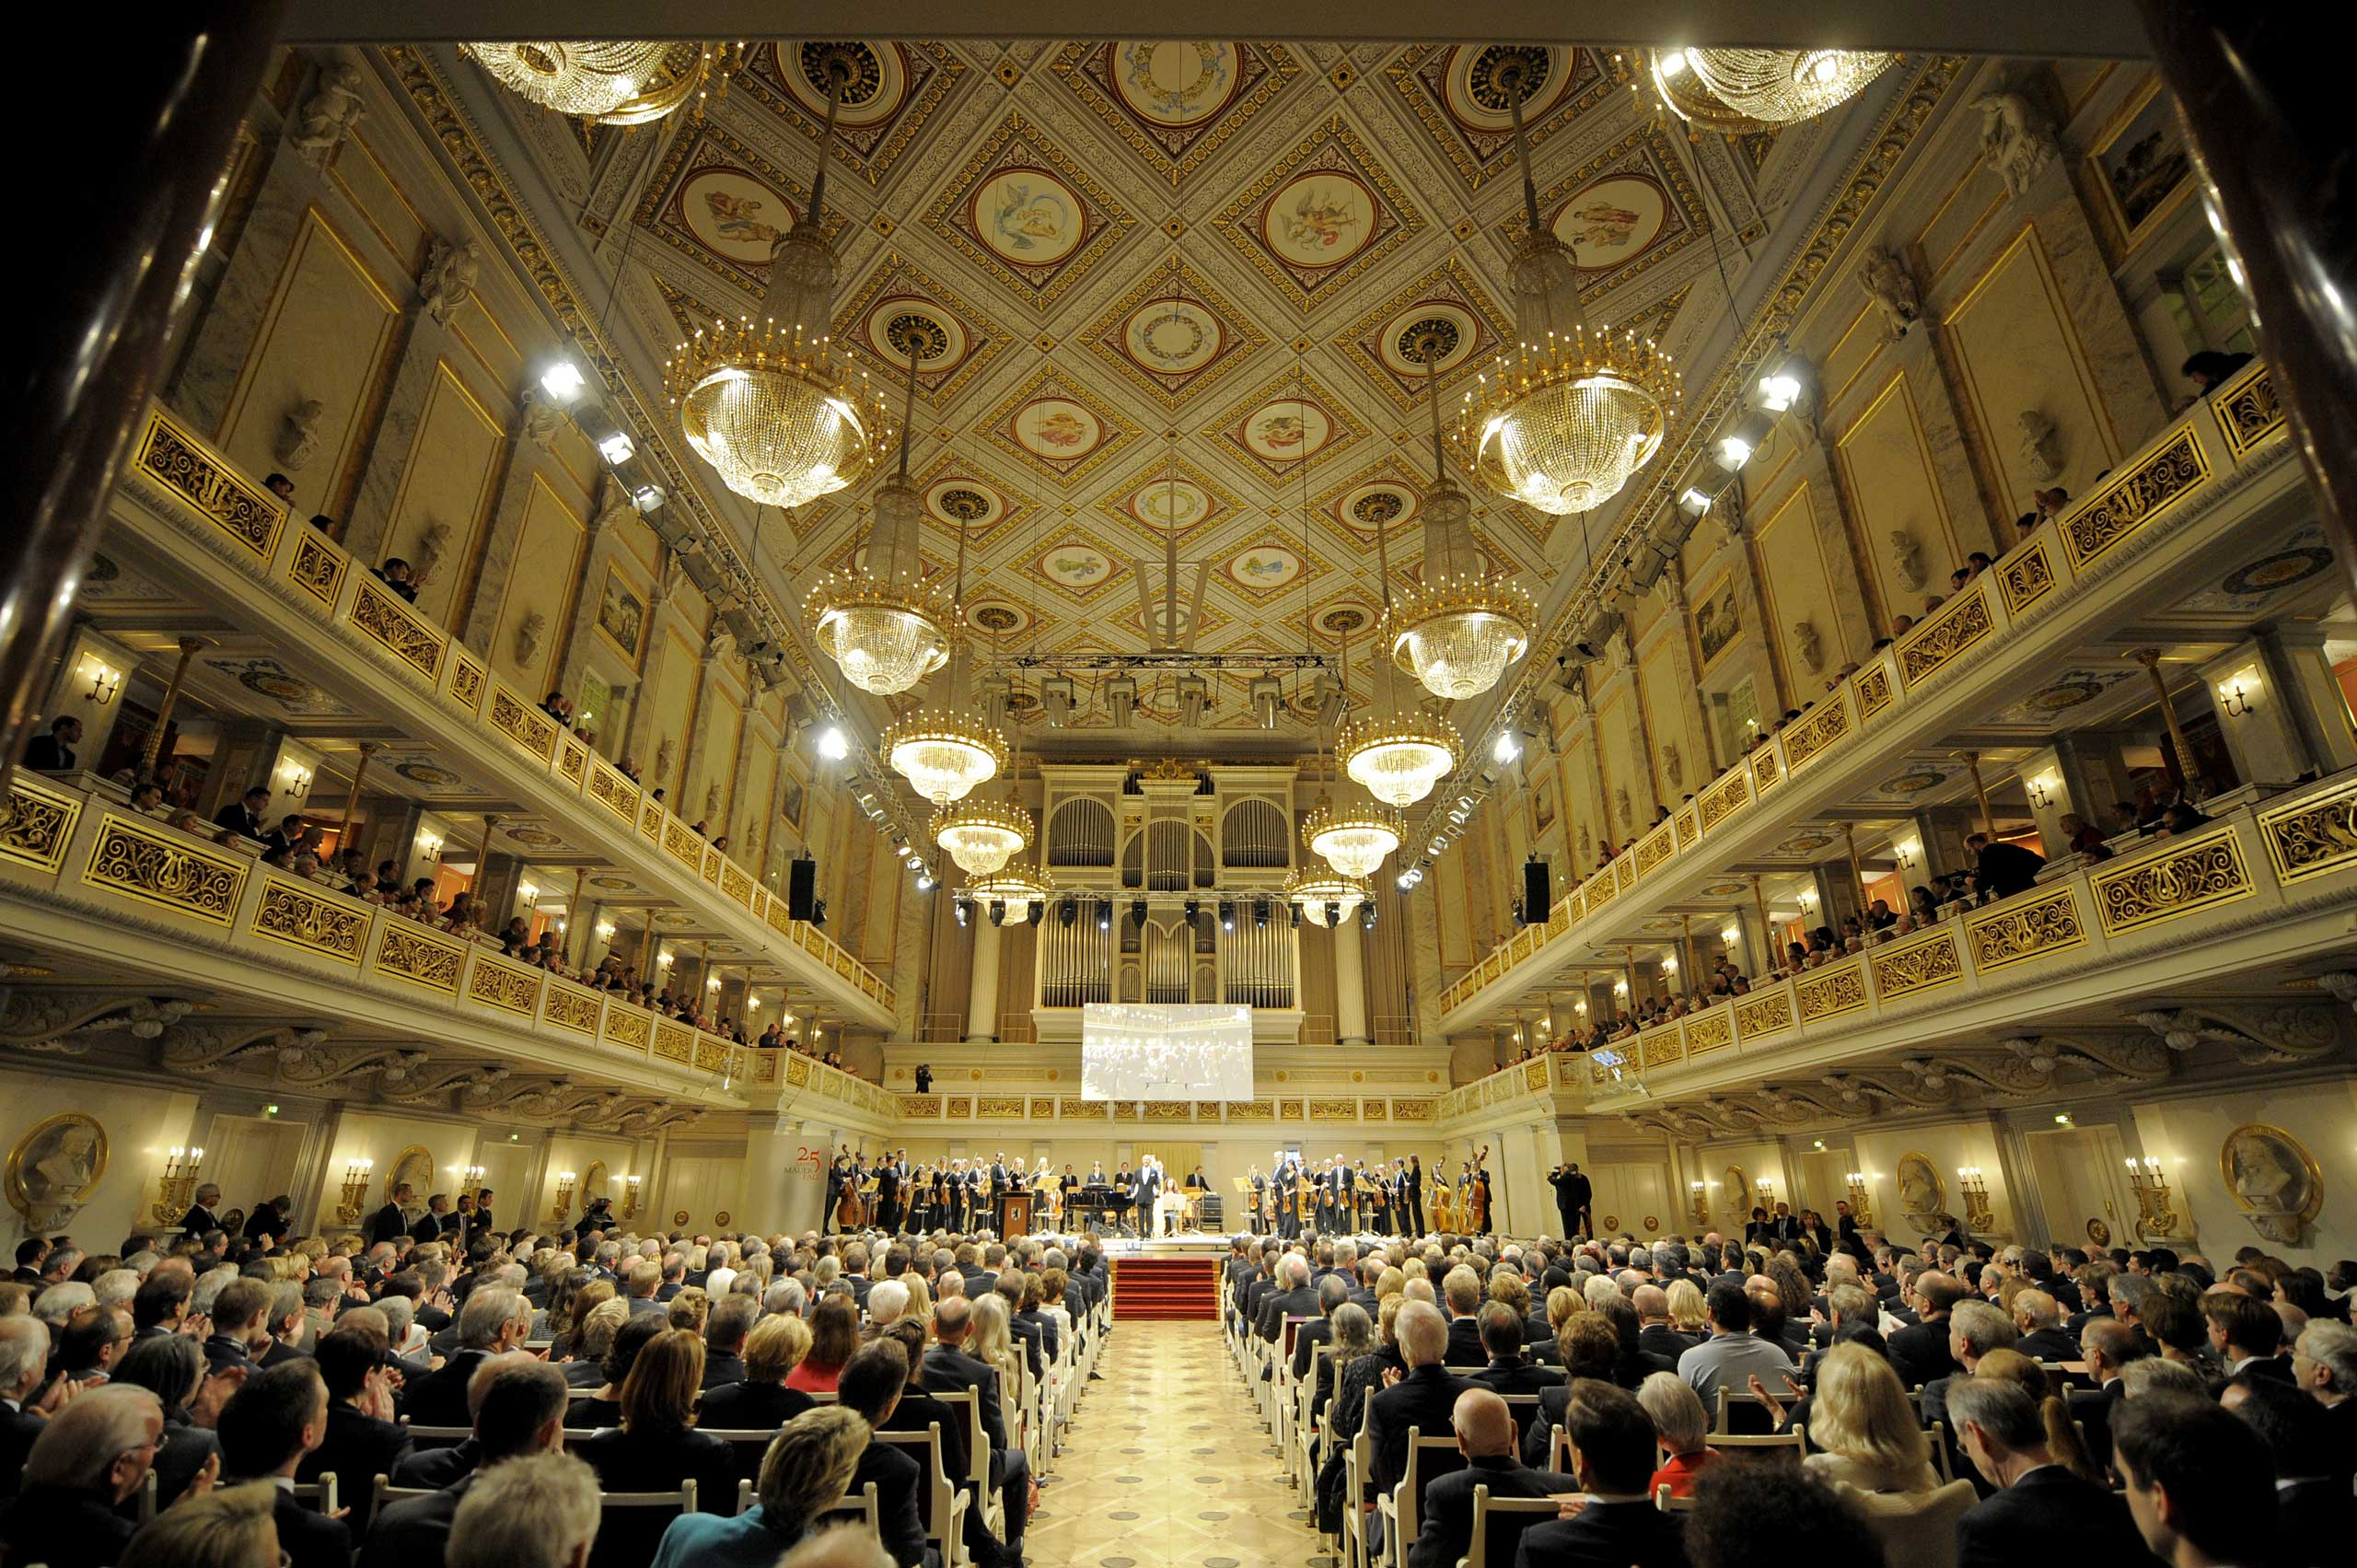 Guests attend a ceremony organised by the Berlin Senate to mark the 25th anniversary of the fall of the Berlin Wall, on November 9, 2014 at the Gendarmenmarkt Konzerthaus in Berlin.